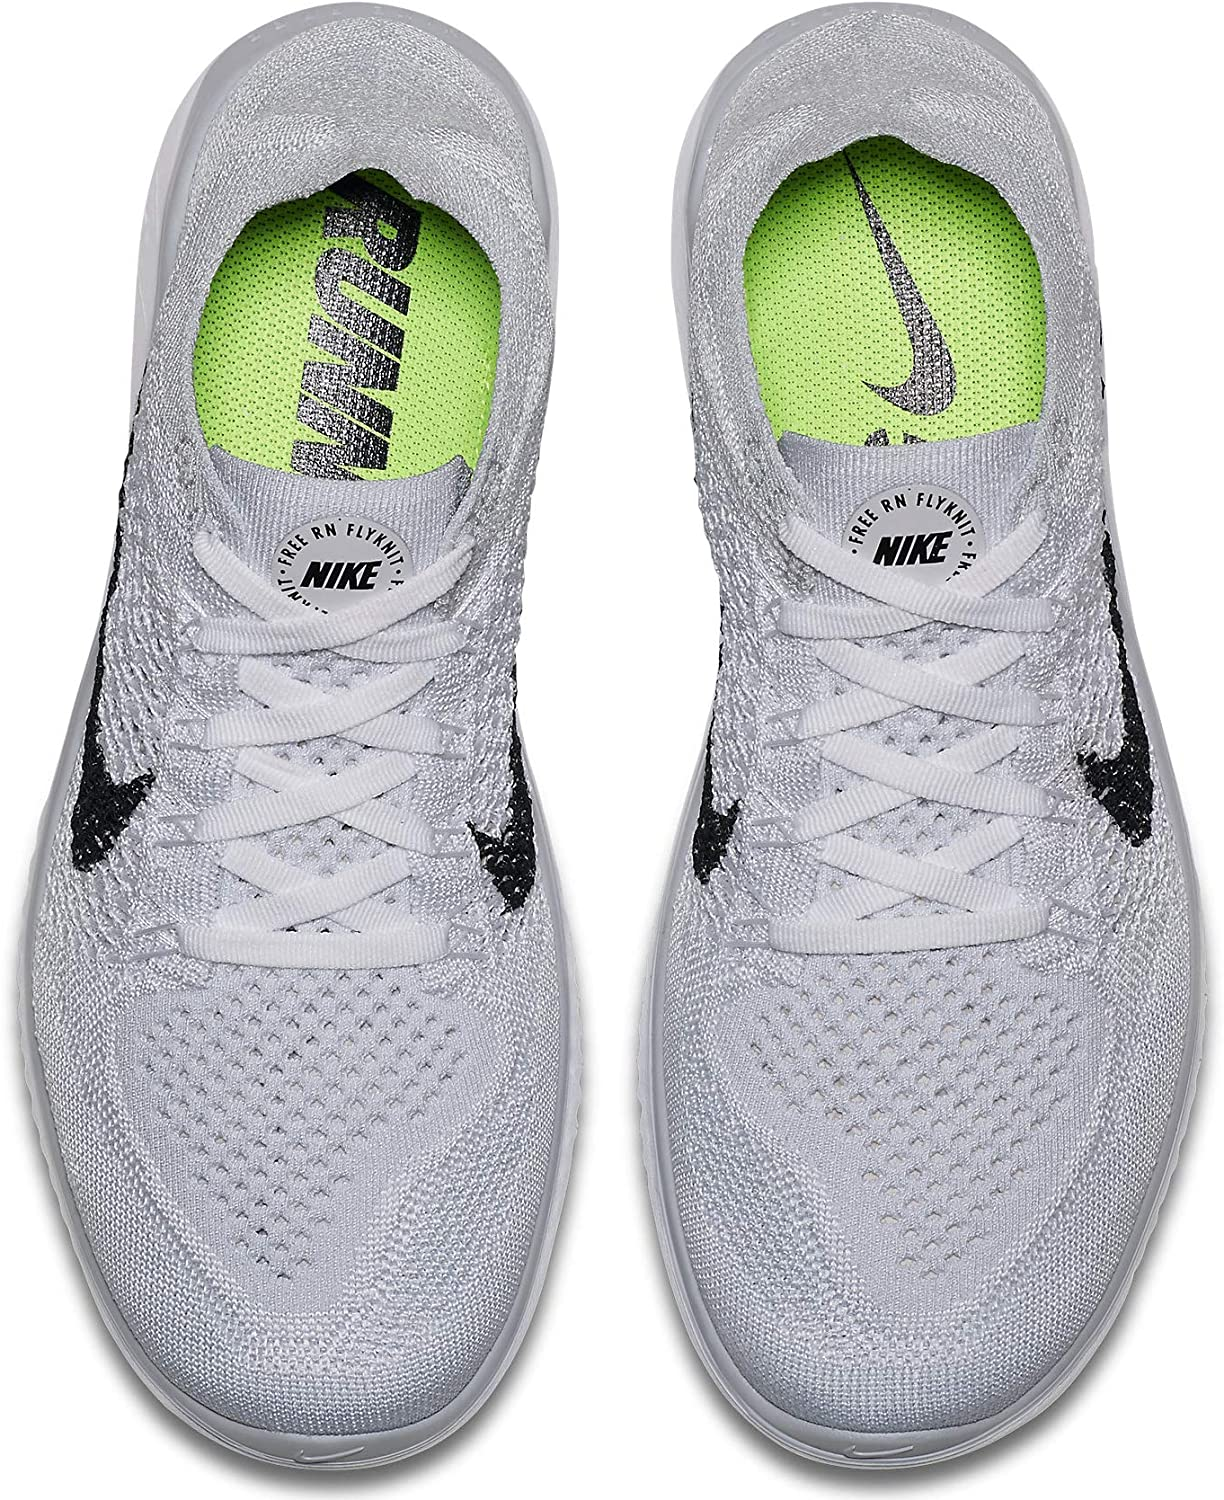 Nike WMNS Free RN Flyknit 2018 942839-100 White Black Pure Platinum Women s Running Shoes